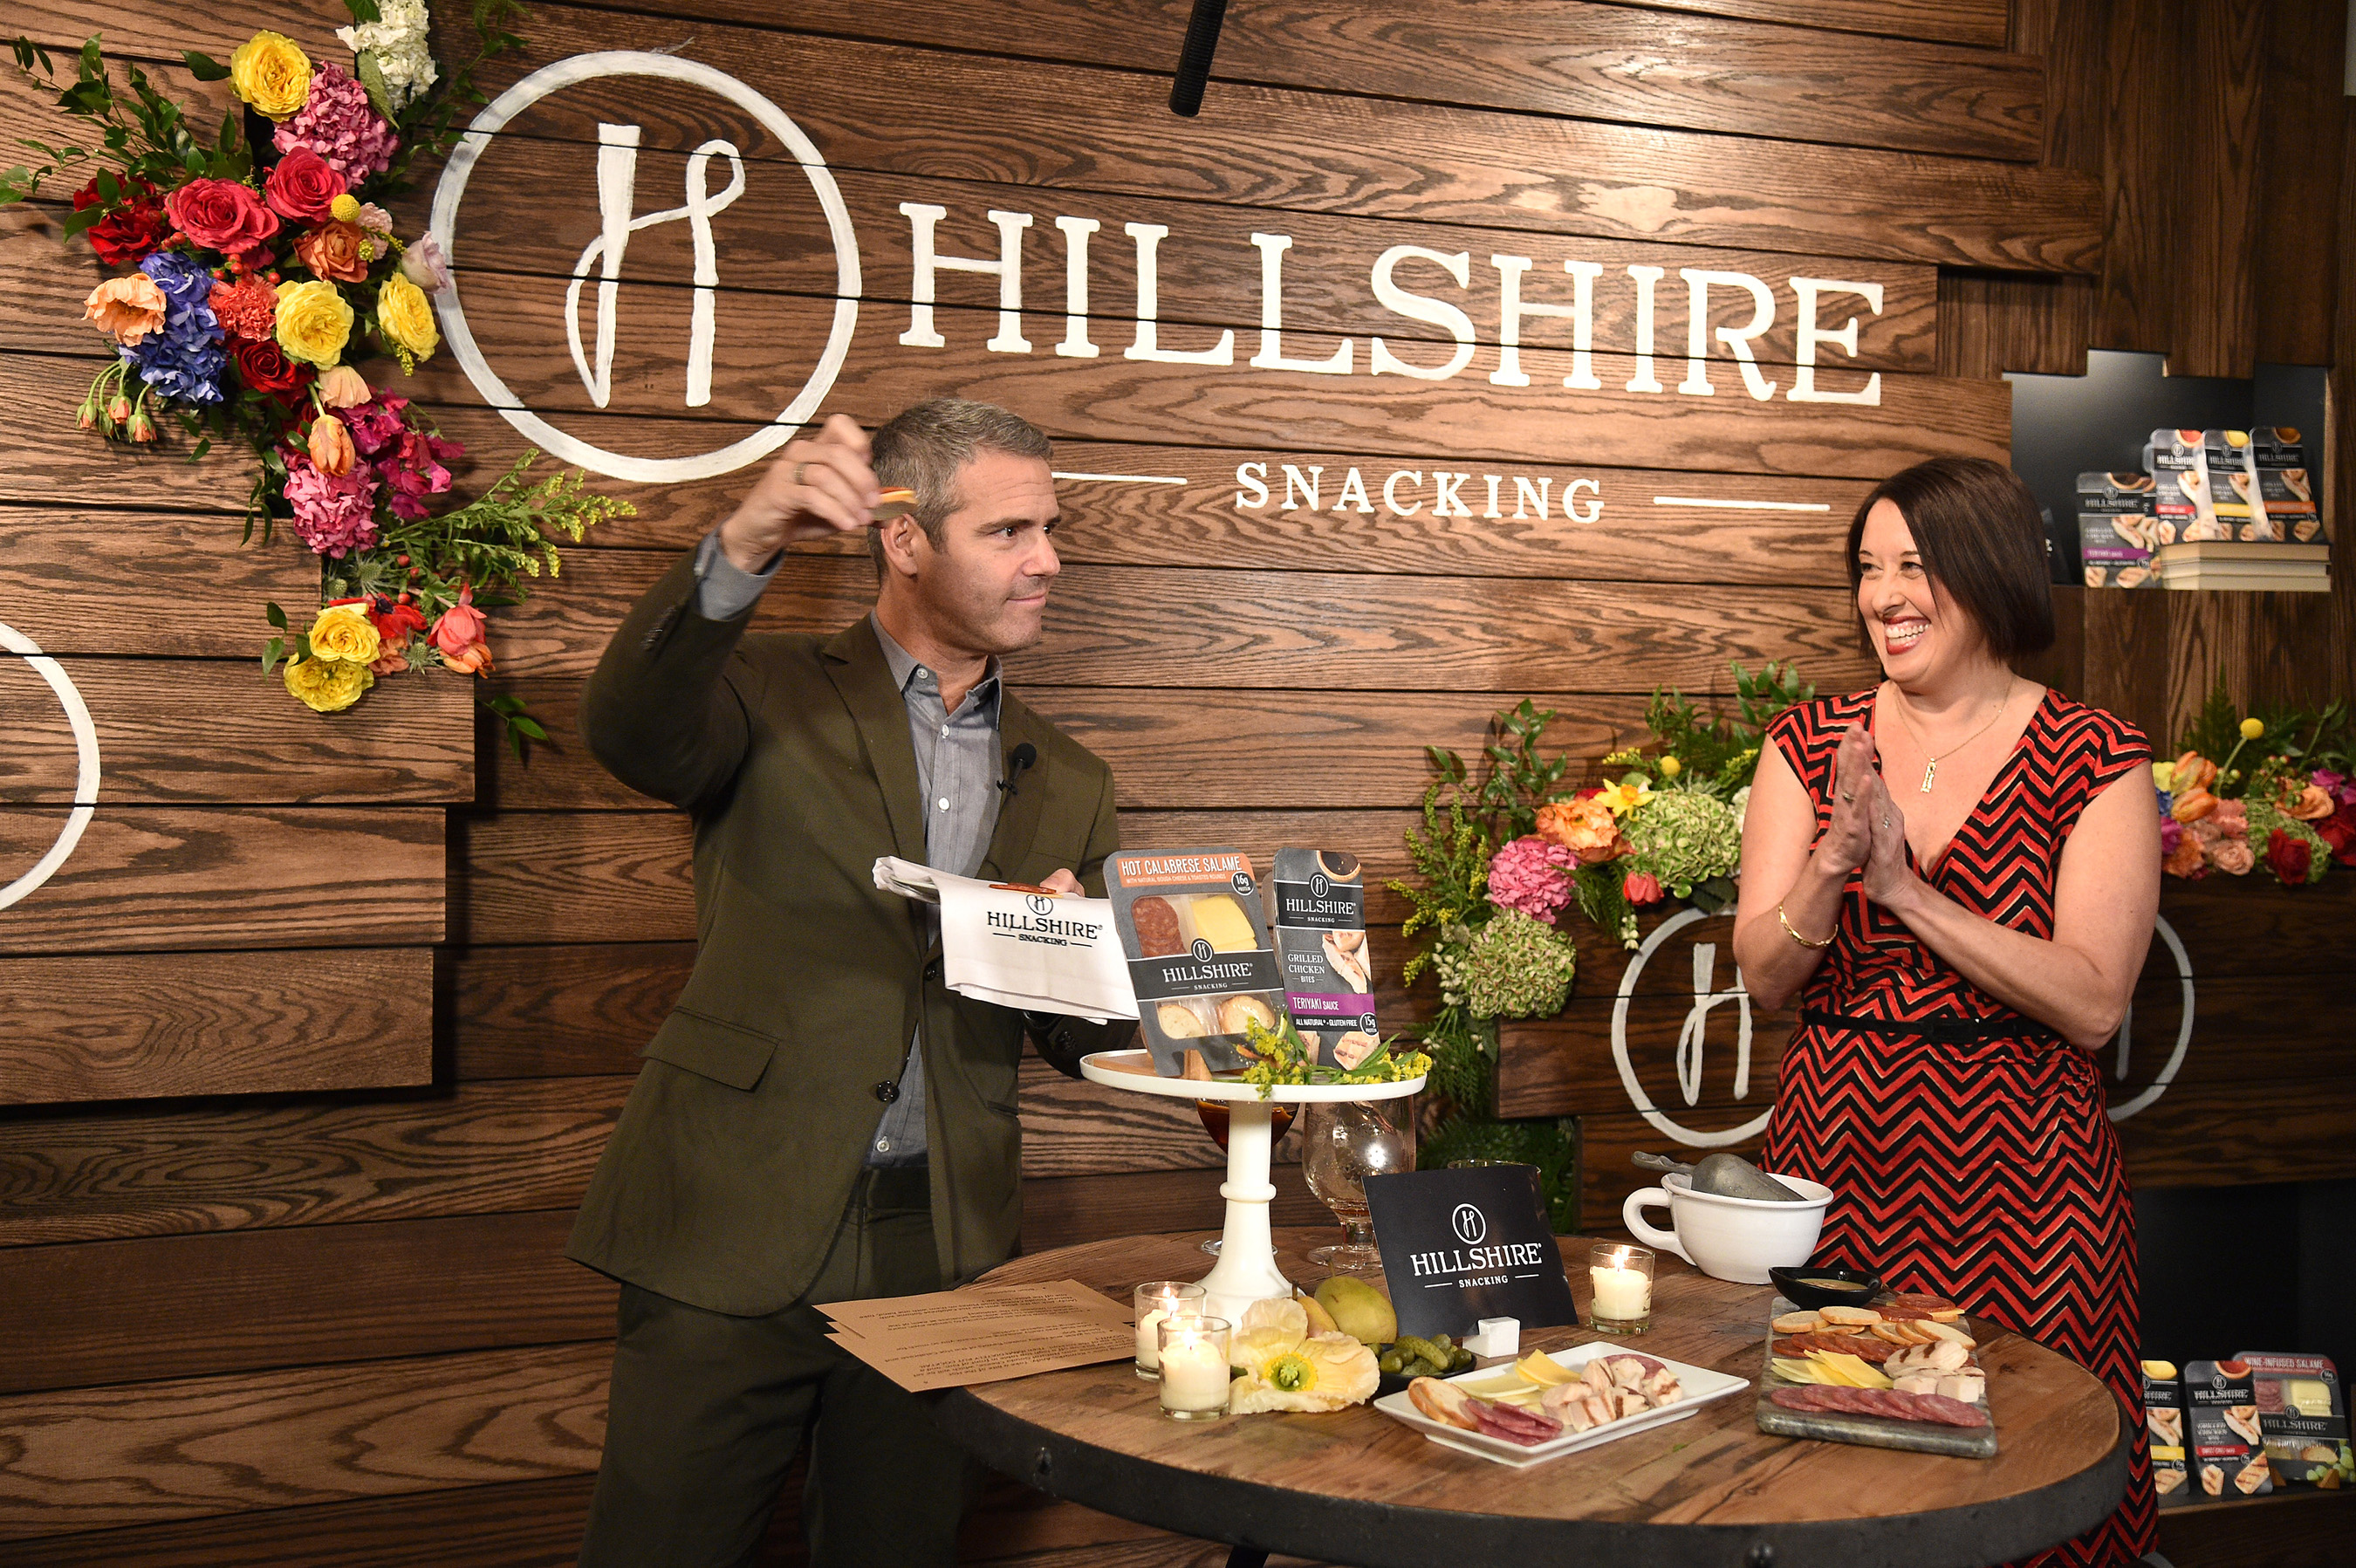 Watch what happens! Andy Cohen hosts Hillshire Snacking launch party in NYC.